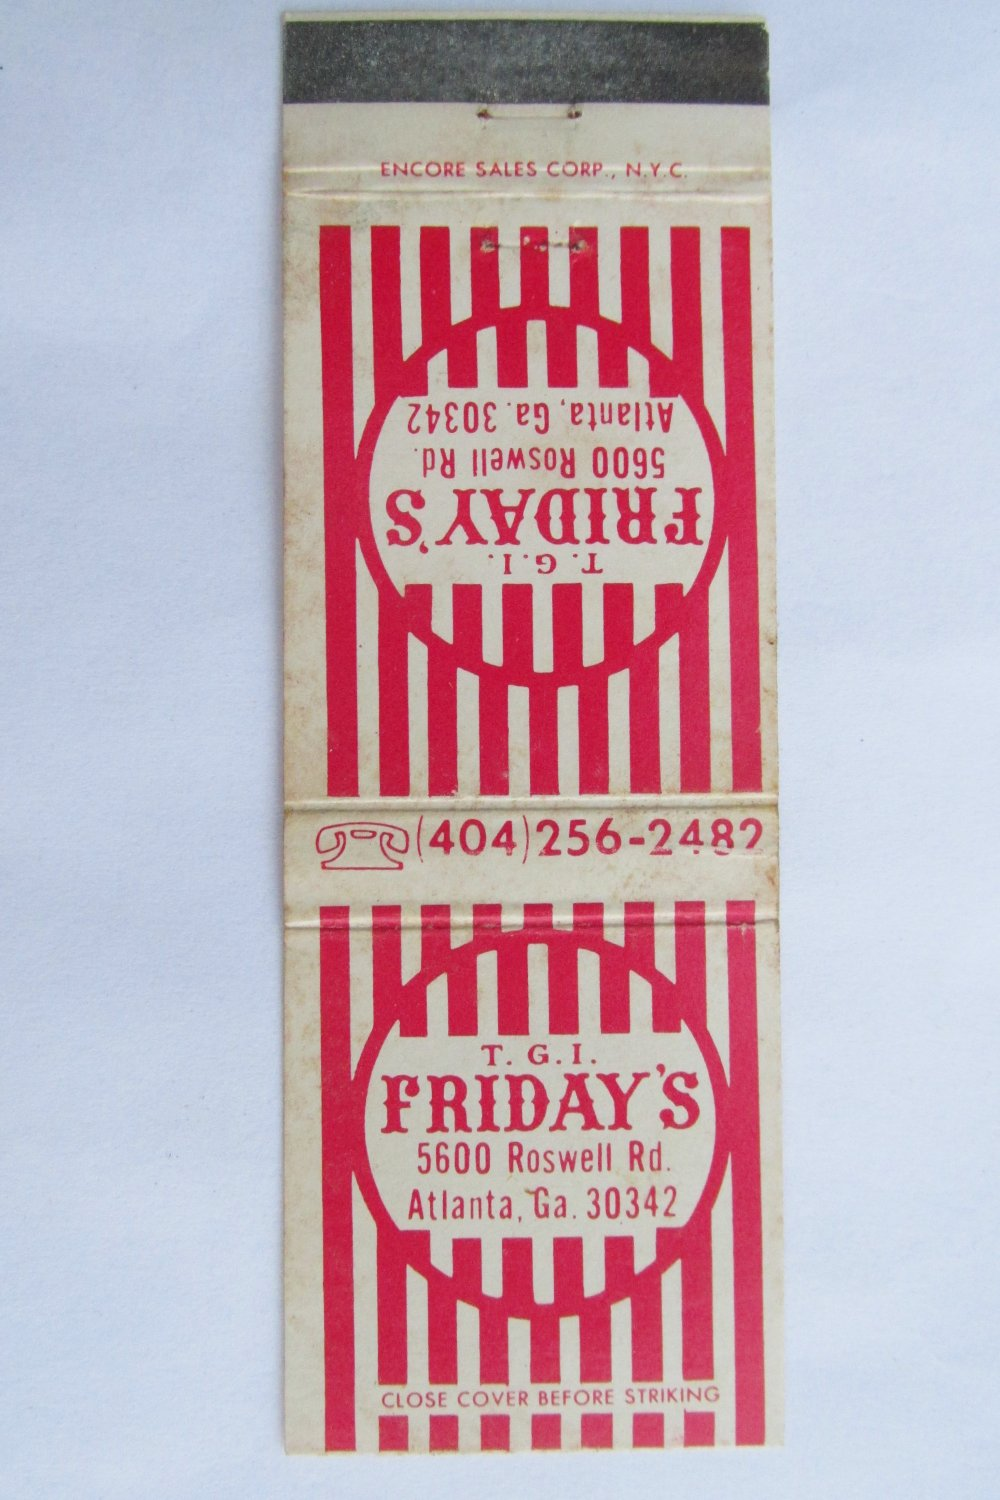 T.G.I. Friday's Restaurant Atlanta, GA Georgia 20 Strike Matchbook Match Cover